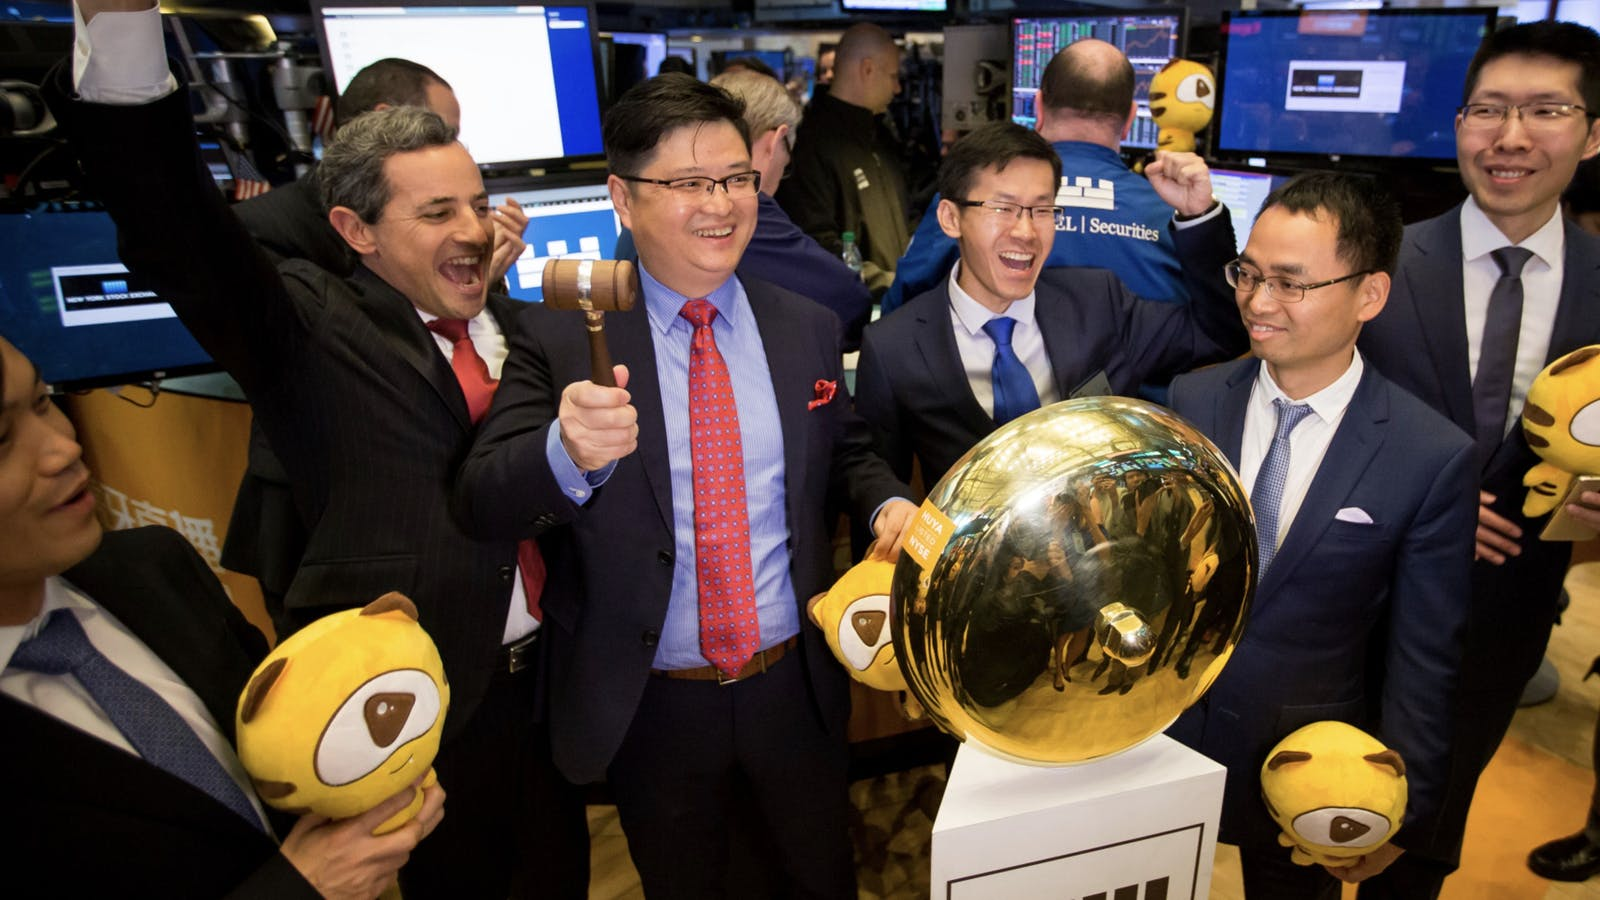 YY CEO Li Xueling, holding the hammer,  at the New York Stock Exchange last year when YY's subsidiary Huya went public. Photo by Bloomberg